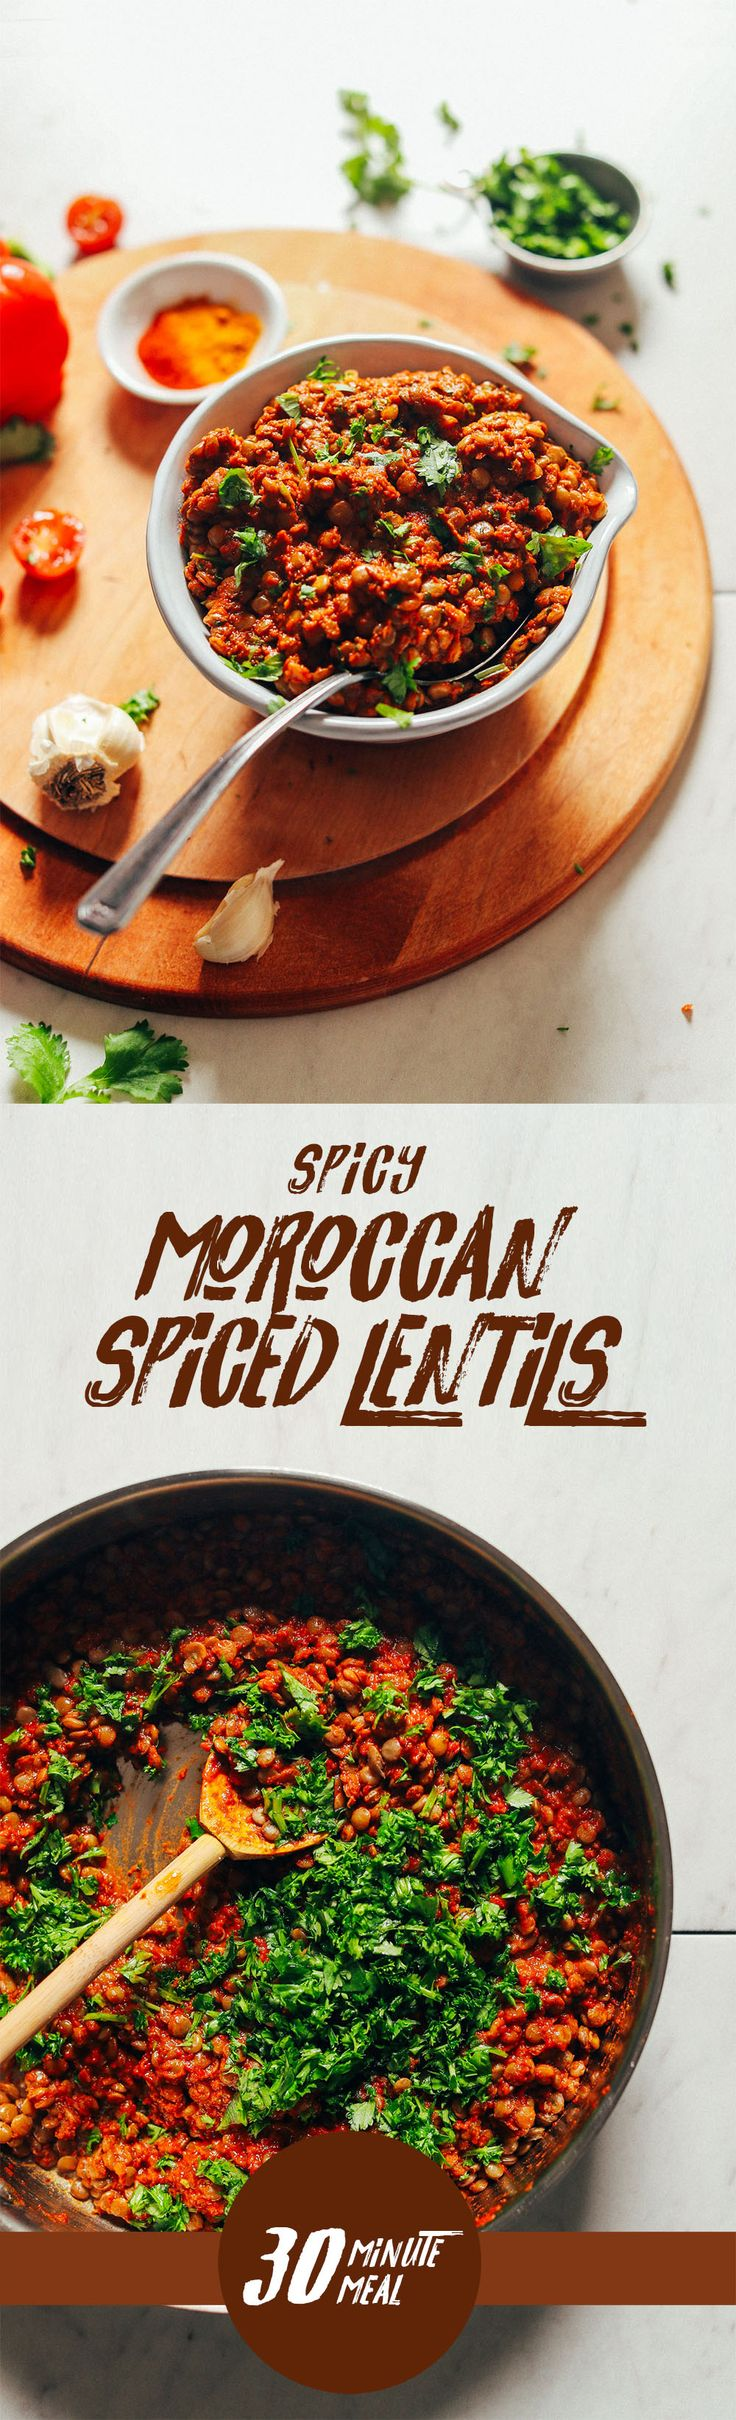 AMAZING Moroccan Spiced Lentils! Just 30 minutes required